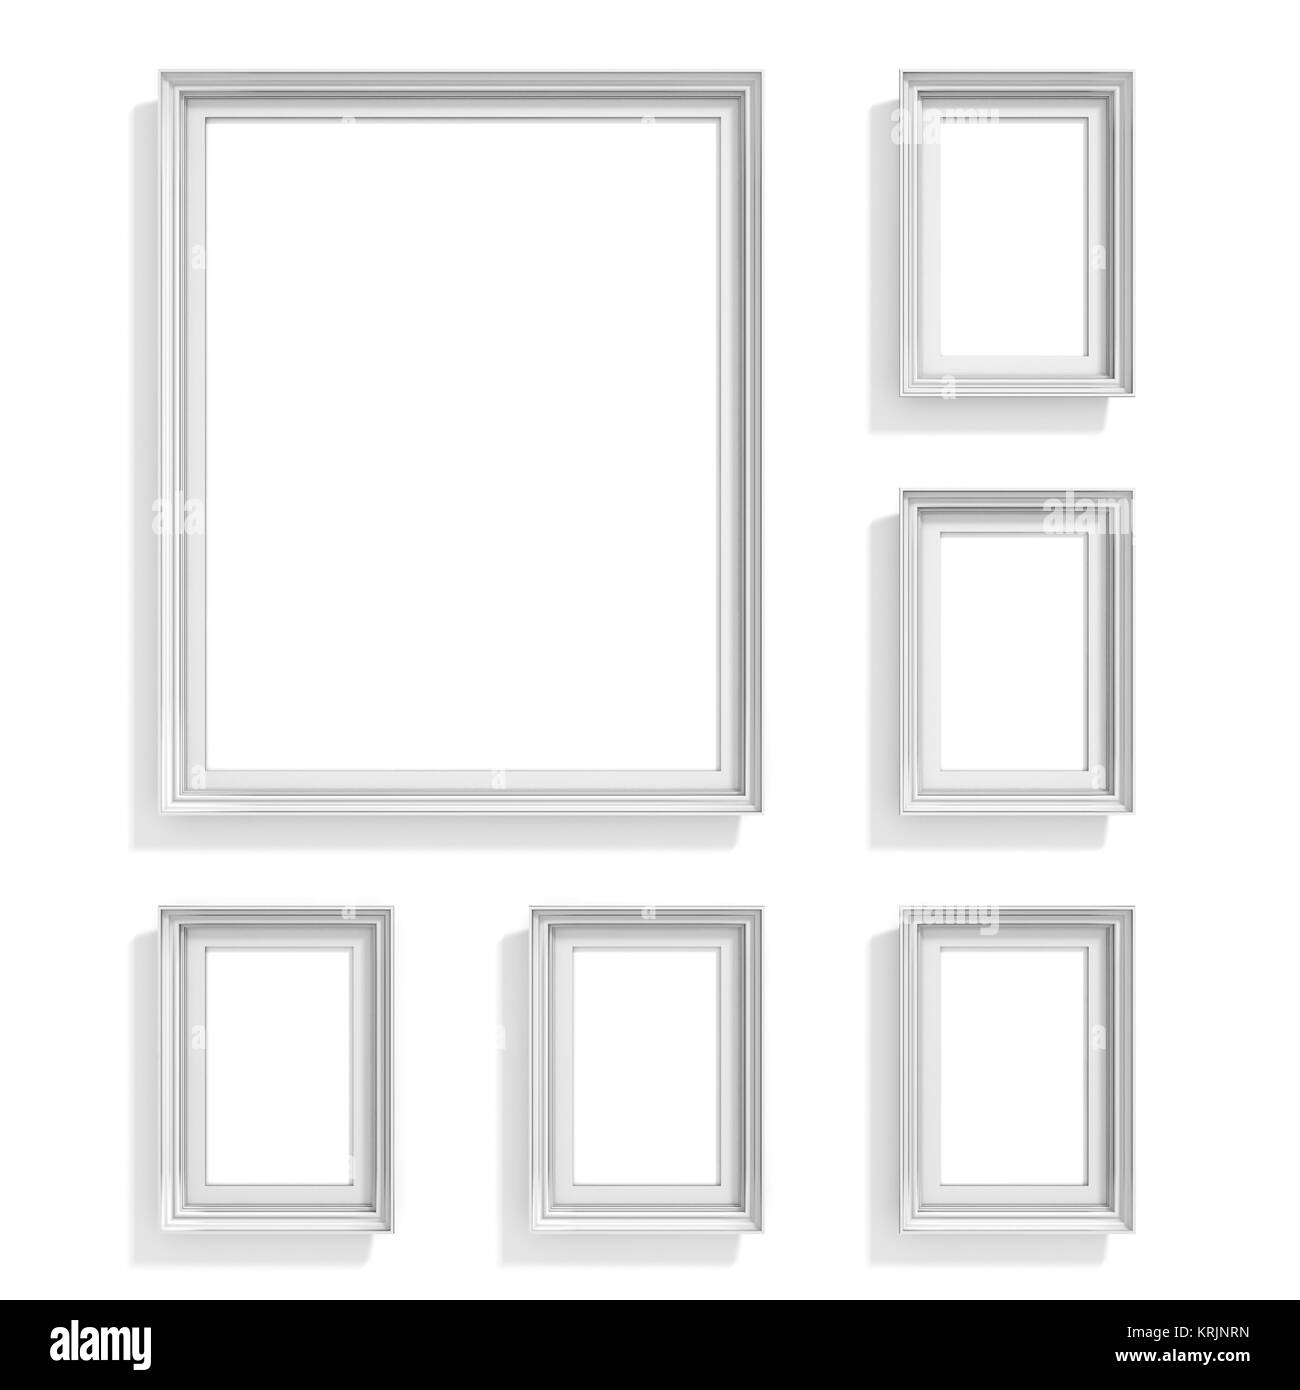 Blank picture frames. Website background template. Composition set - Stock Image